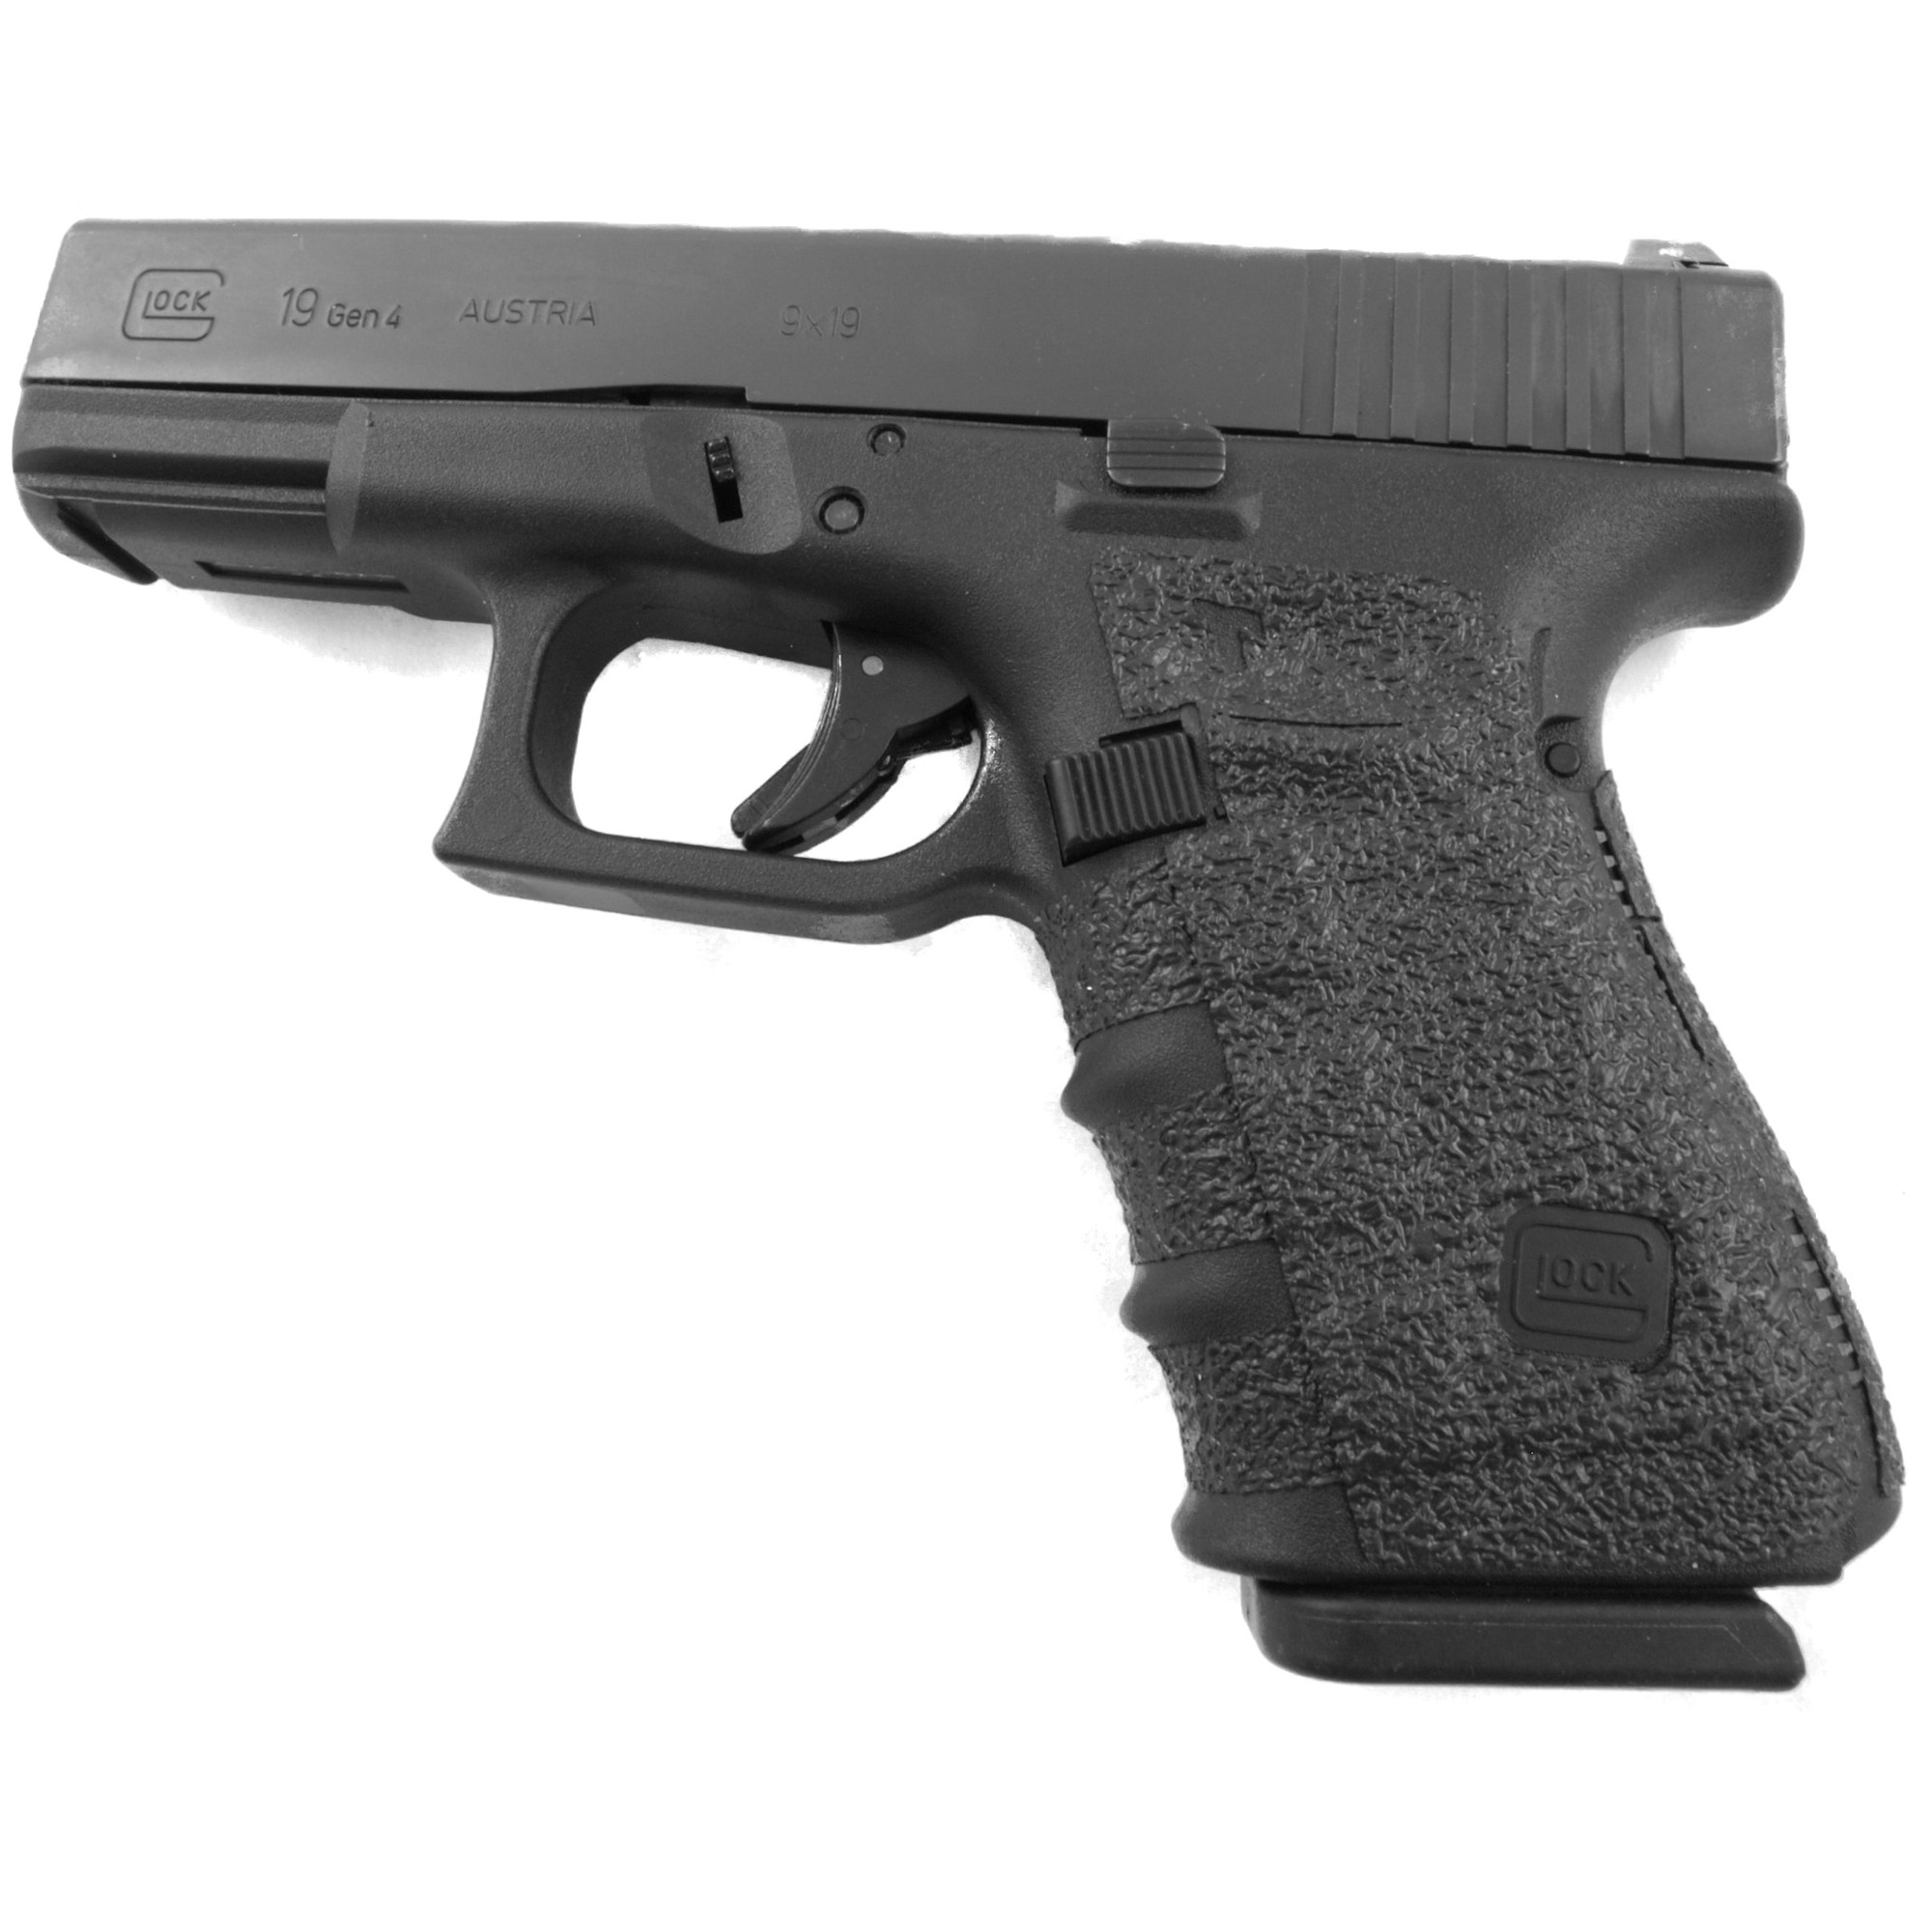 """TALON Grips for Gen 4 Glock 19"""" 23"""" 25"""" 32"""" and 38 models with No Backstrap. This rear wrap grip is in the rubber texture. This grip provides full coverage on the side panels including above the thumb rest"""" ample coverage on the backstrap"""" and three finger wraps for the finger groves under the trigger guard. This grip has a logo cutout for the Glock emblem on the left side of the handle. This grip sticks extremely well even with the Rough Textured Frame (RTF)."""